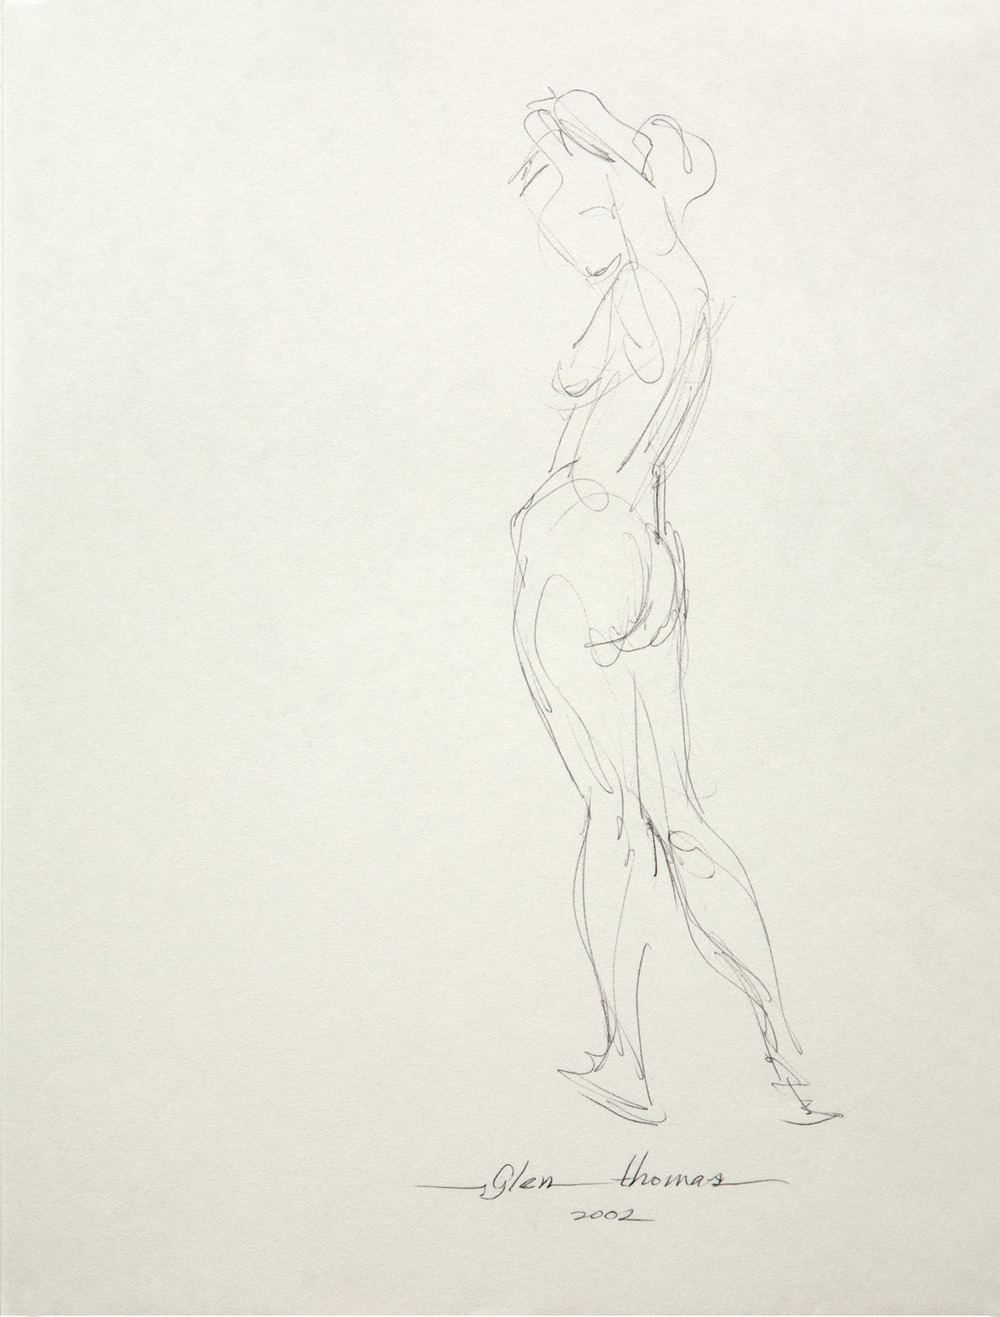 Gestural Drawing, standing figure